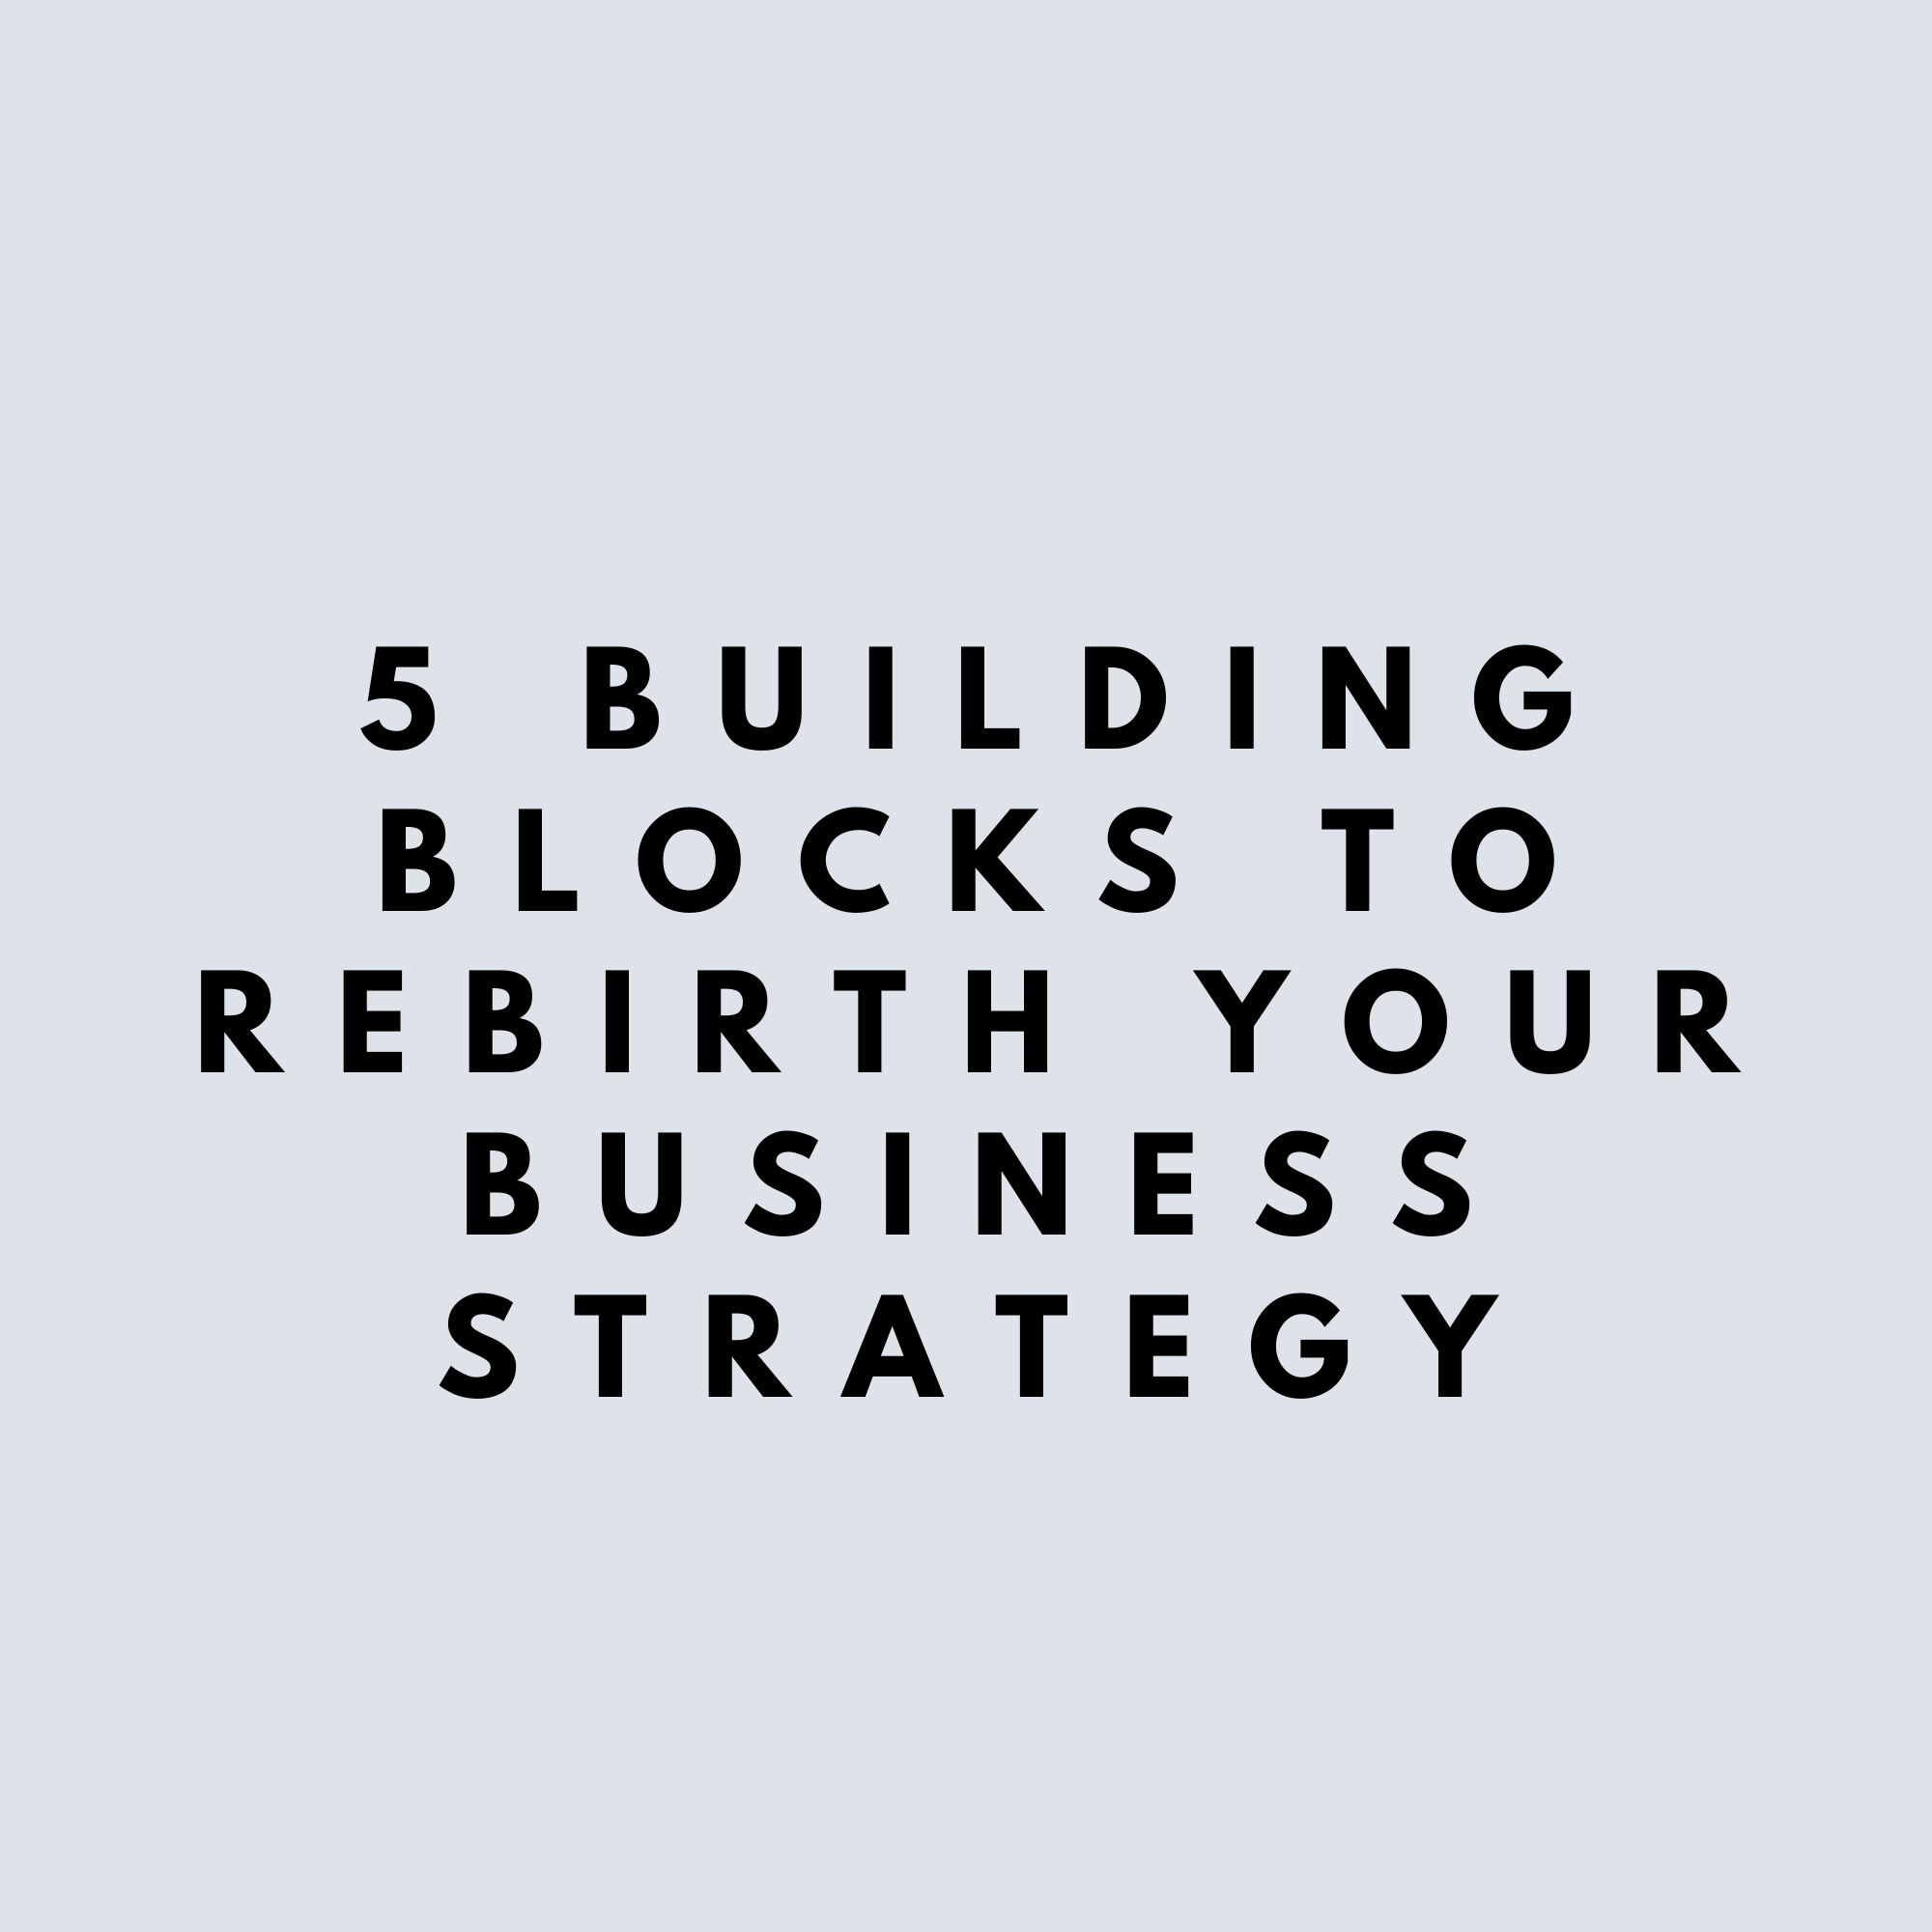 Covid-19, 5 Building Blocks to rebirth your business strategy